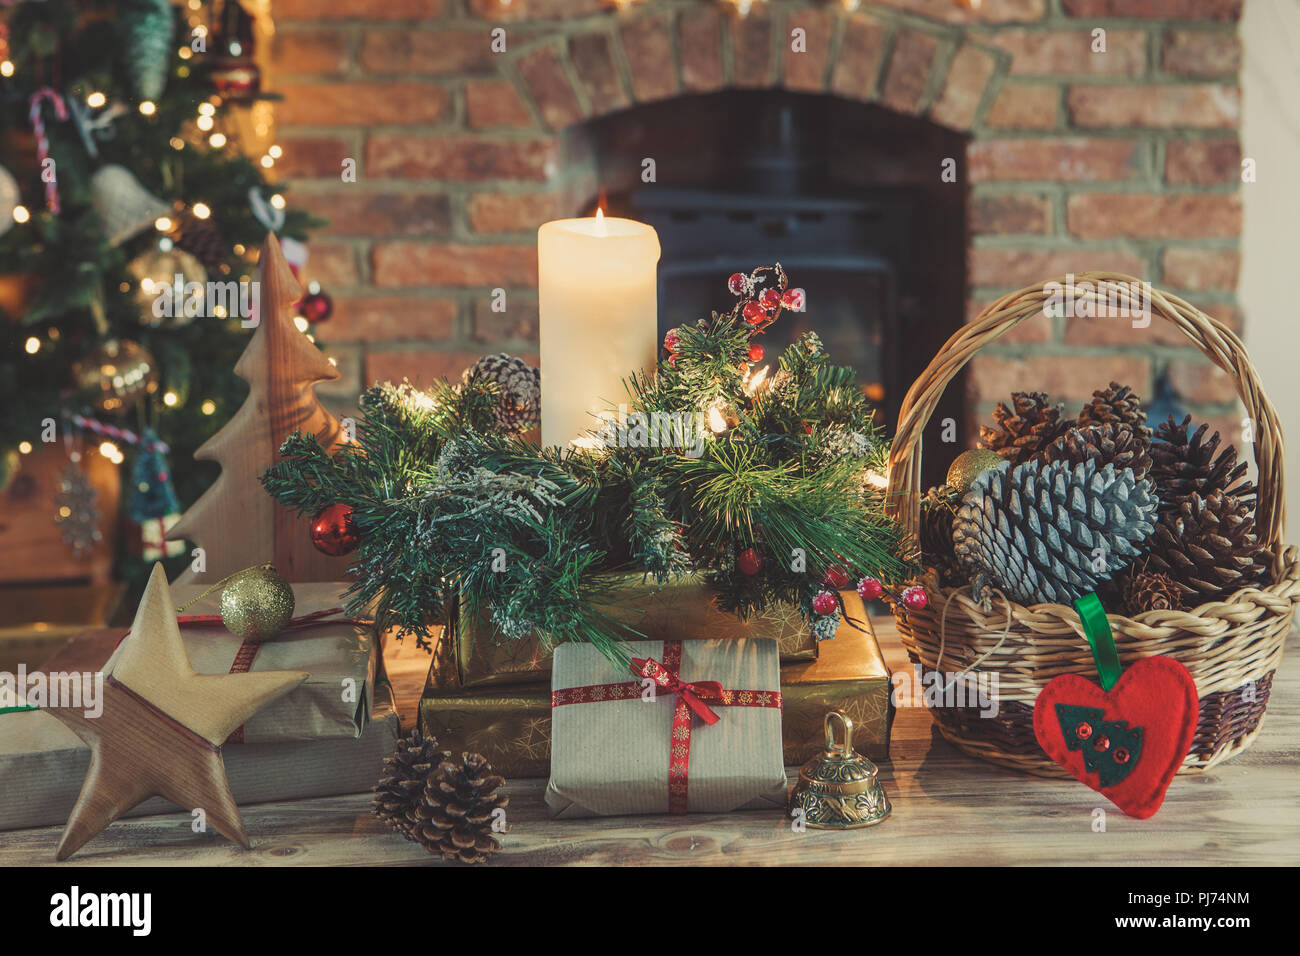 christmas scene presents and decorations on the table in front of the fireplace with woodburner lit up christmas tree with baubles and ornaments and - Light Up Presents Christmas Decorations